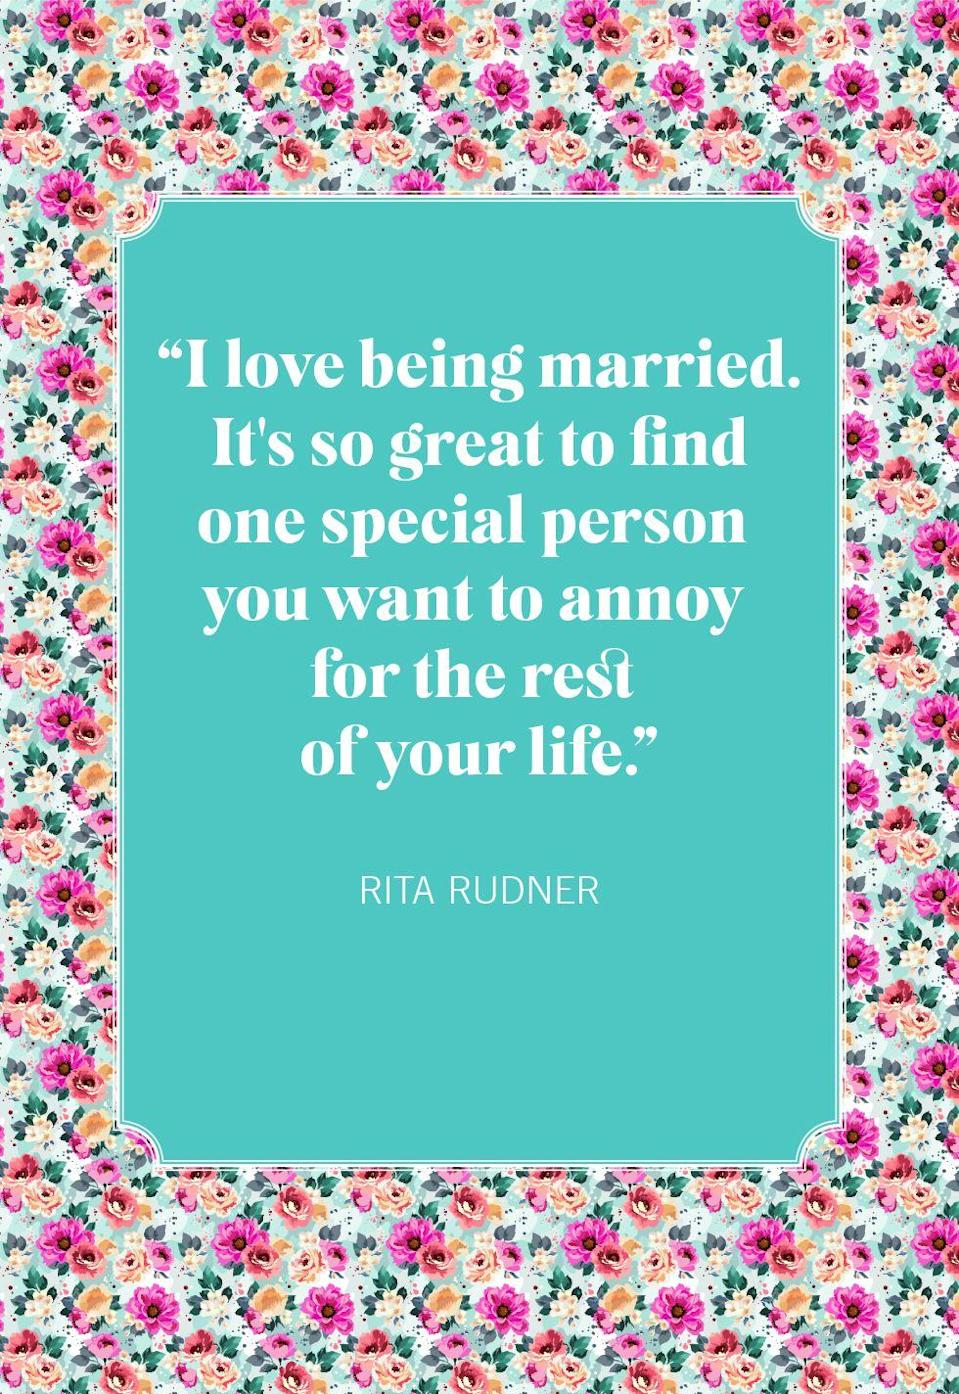 "<p>""I love being married. It's so great to find one special person you want to annoy for the rest of your life.""</p>"